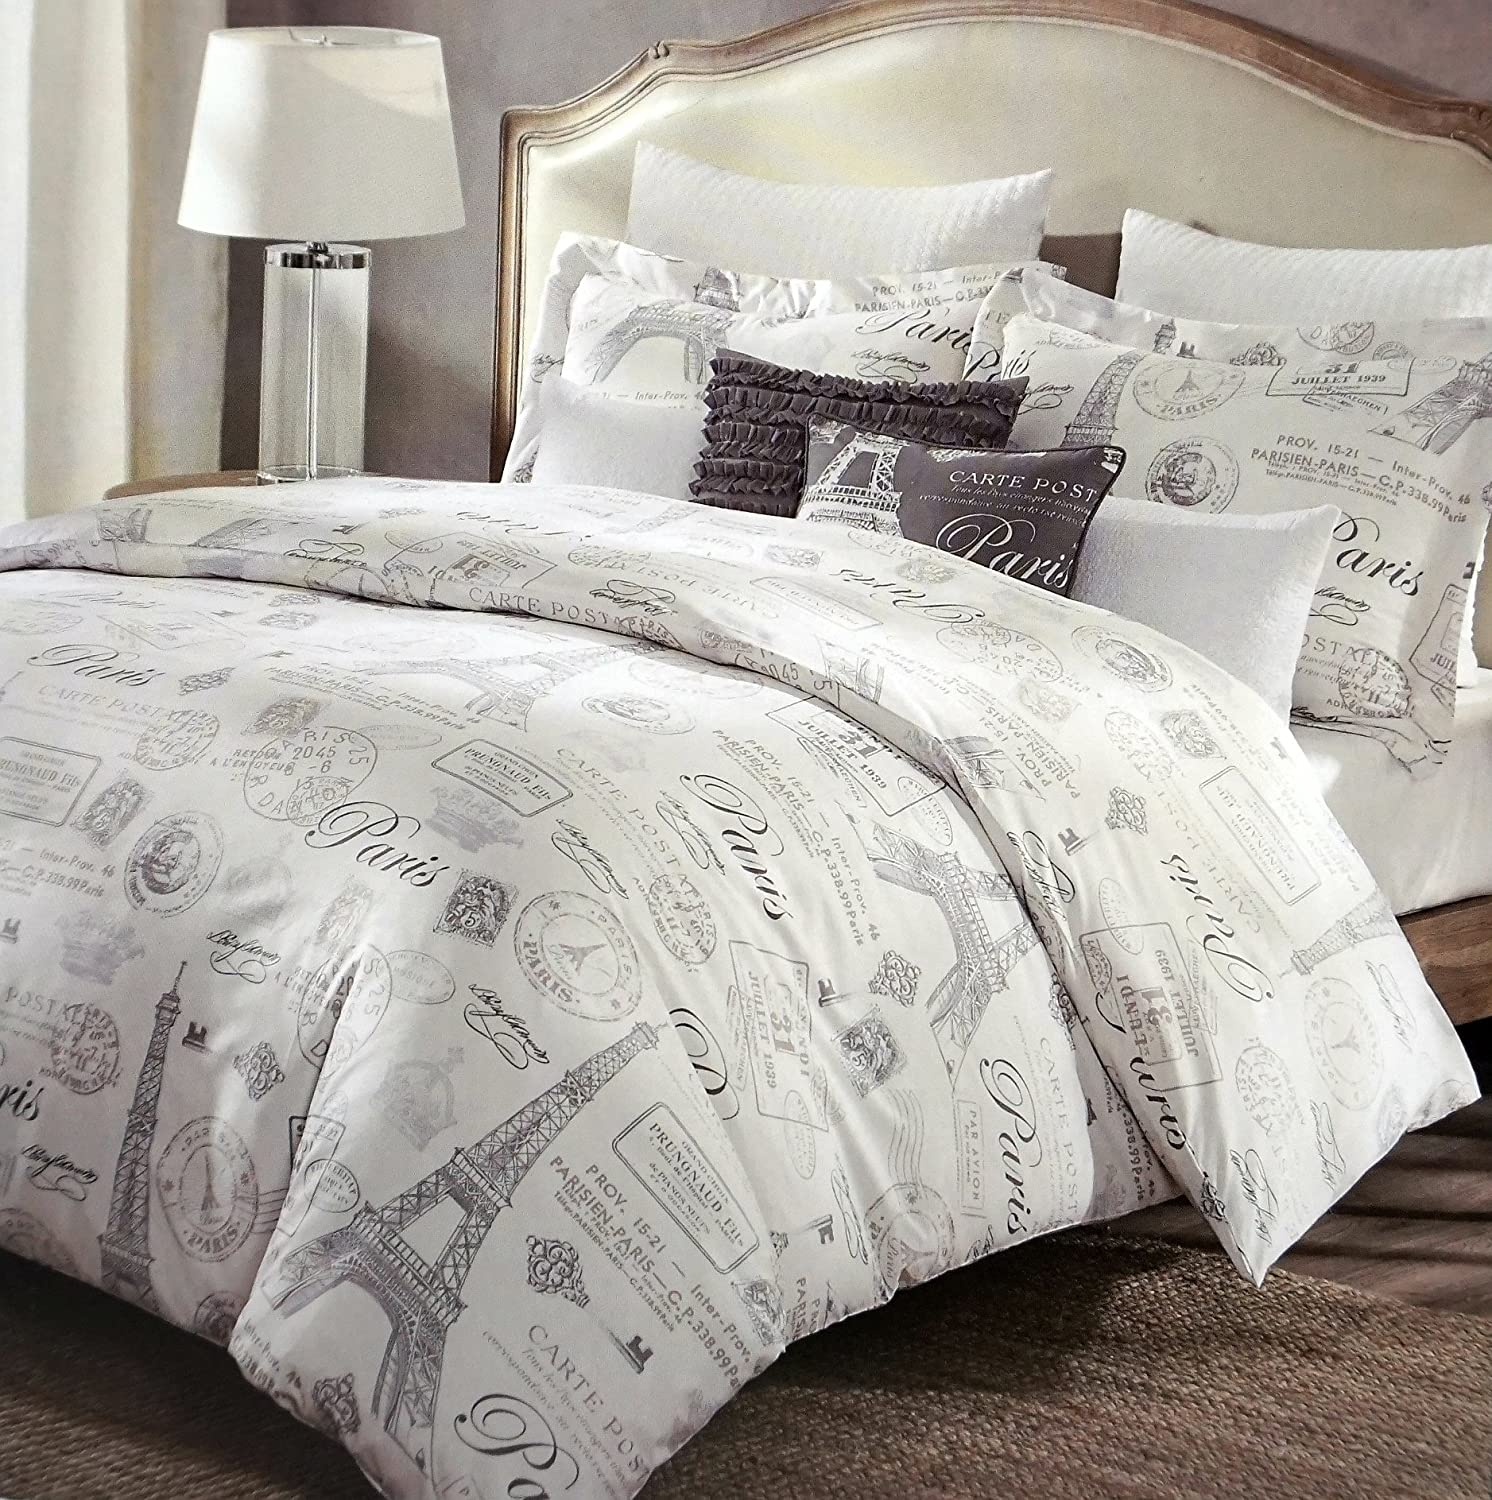 Vintage bedding clearance sale ease bedding with style for Designer inspired bedding